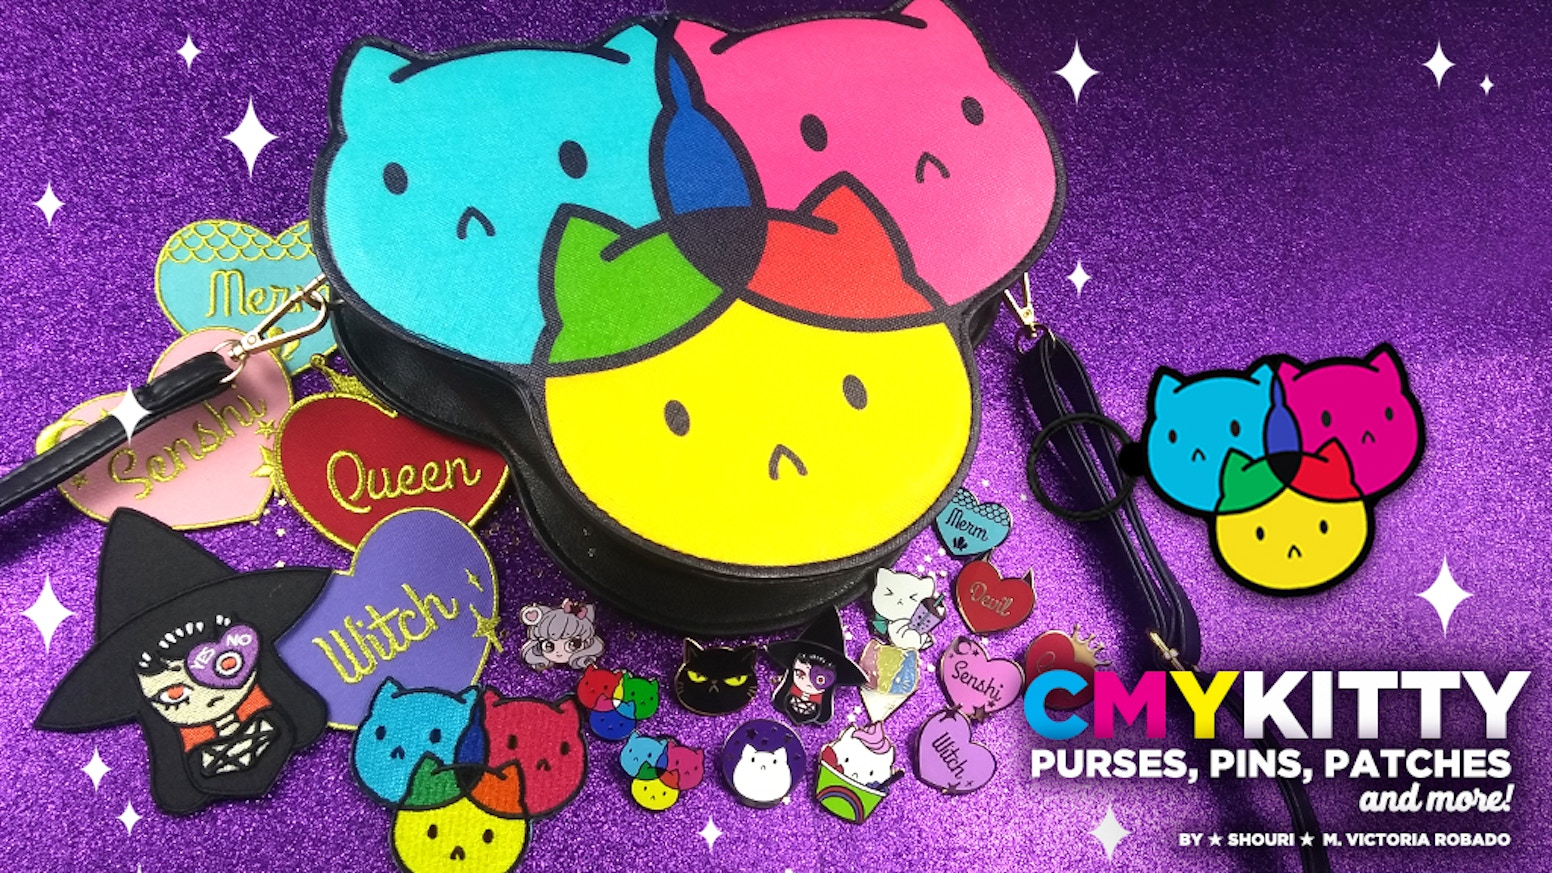 Sassy Kitty Pins is expanding its line of cute cat merch! Help me make my CMYKitty dreams a reality and unlock more designs!Purses, coinbags, enamel pins, lanyards, keychains, bag tags, tote bags, and t-shirts were made possible thanks to this campaign!